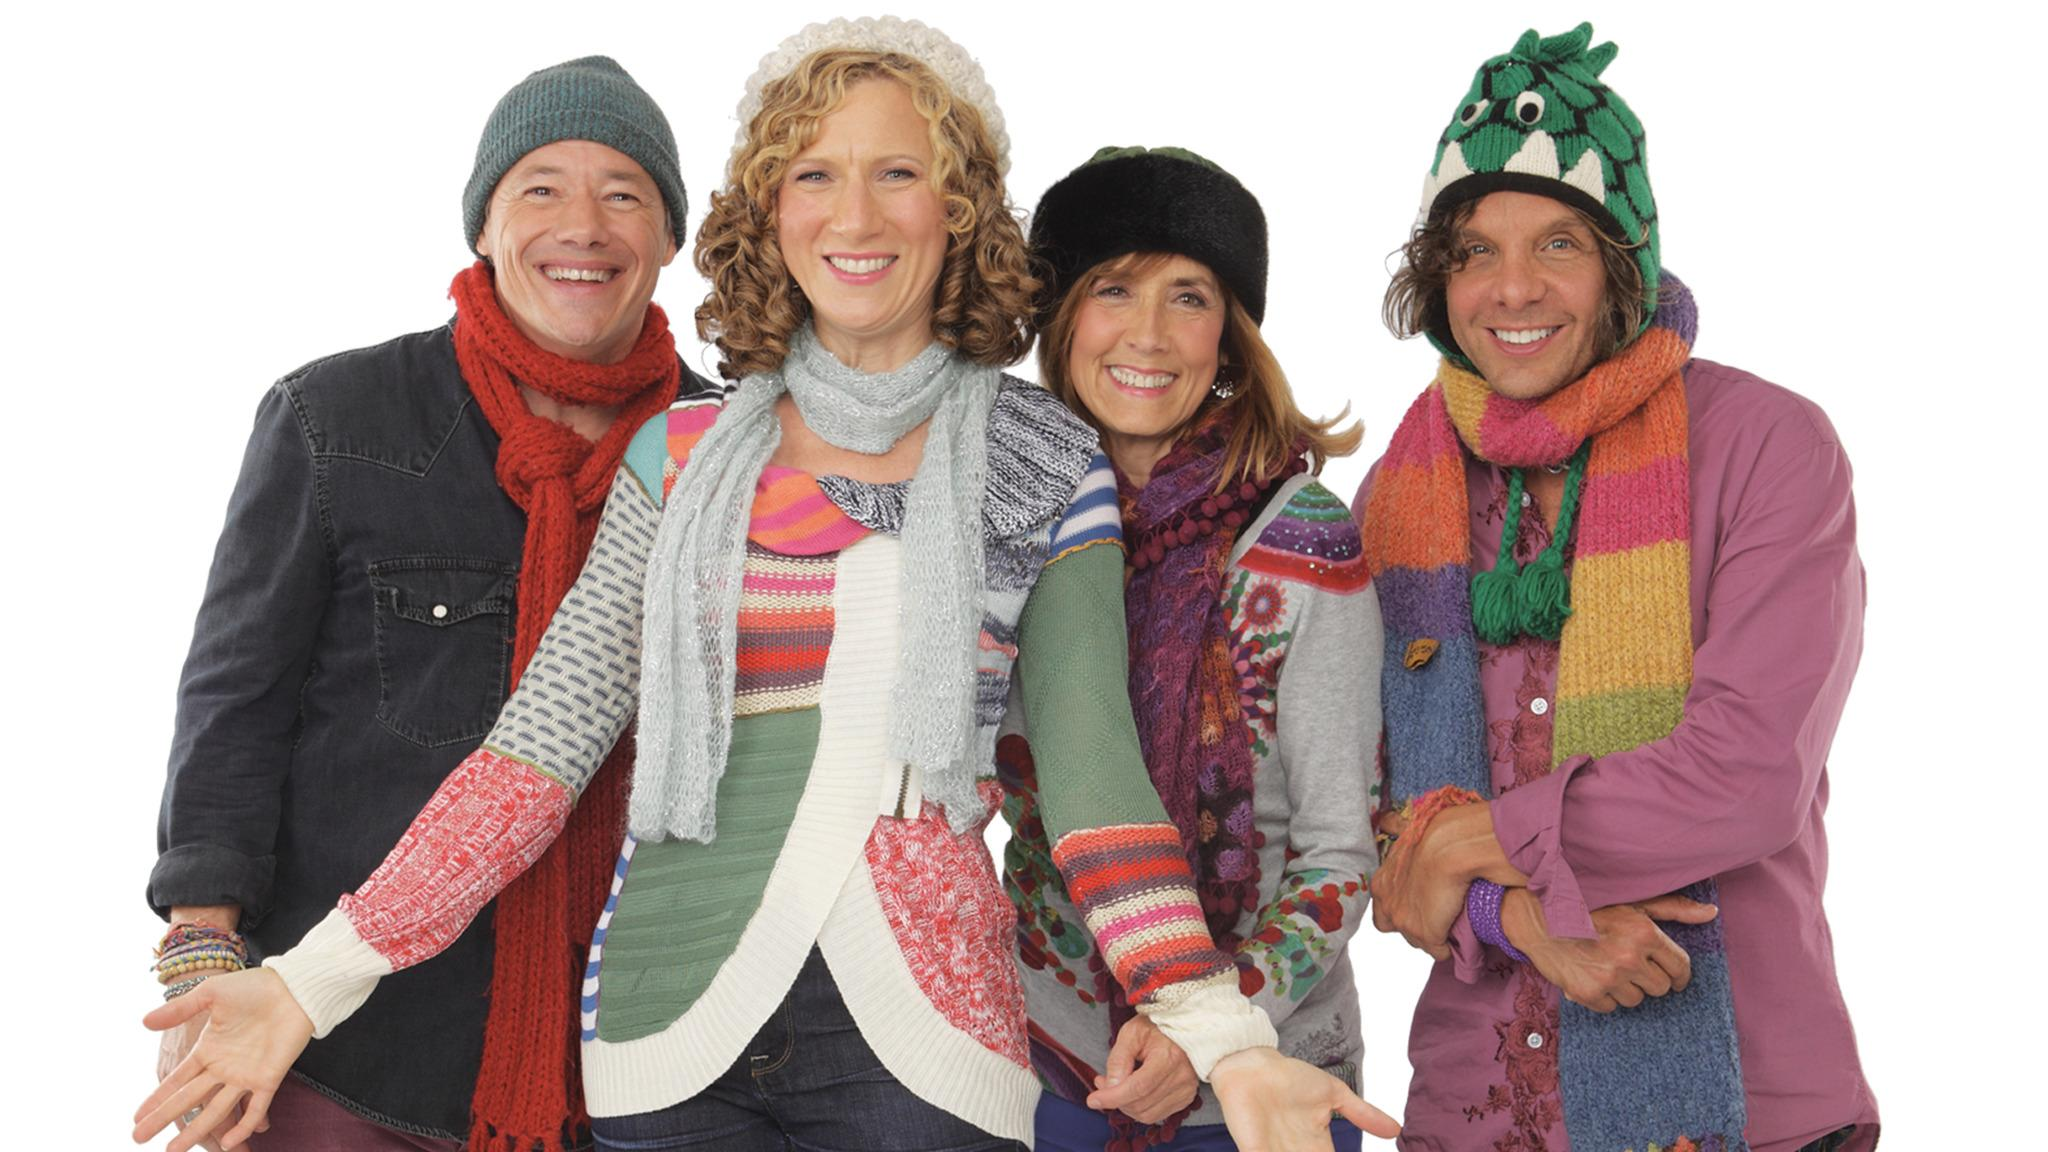 The Laurie Berkner Band at Bergen Performing Arts Center